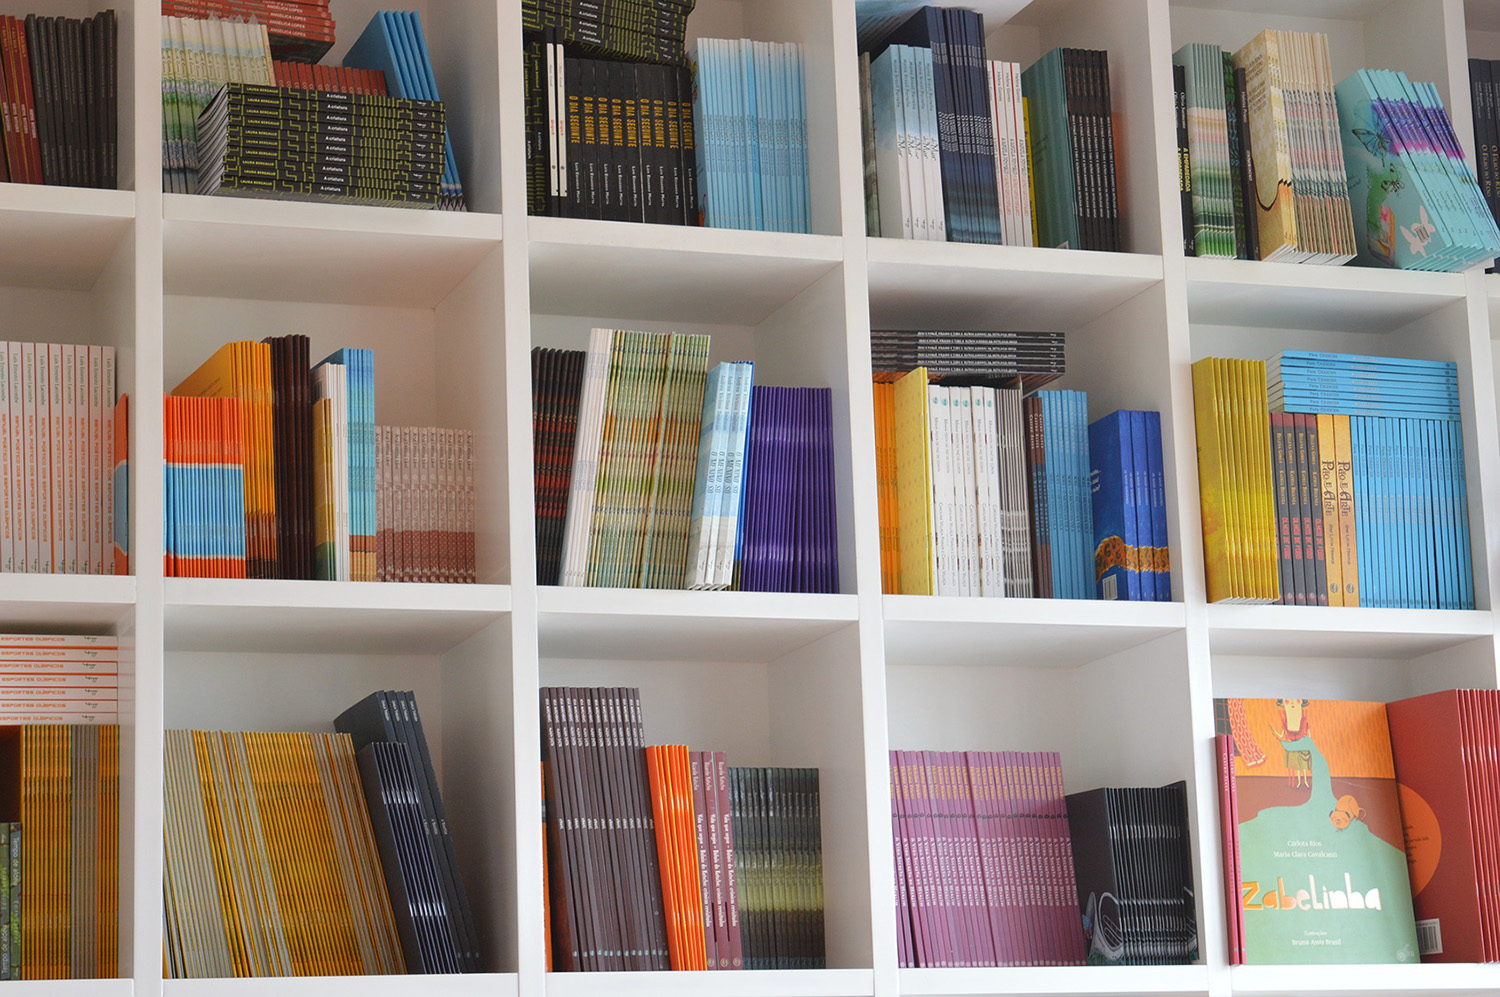 Best-selling Book Genres For 2021 – What  Your Readers Love?